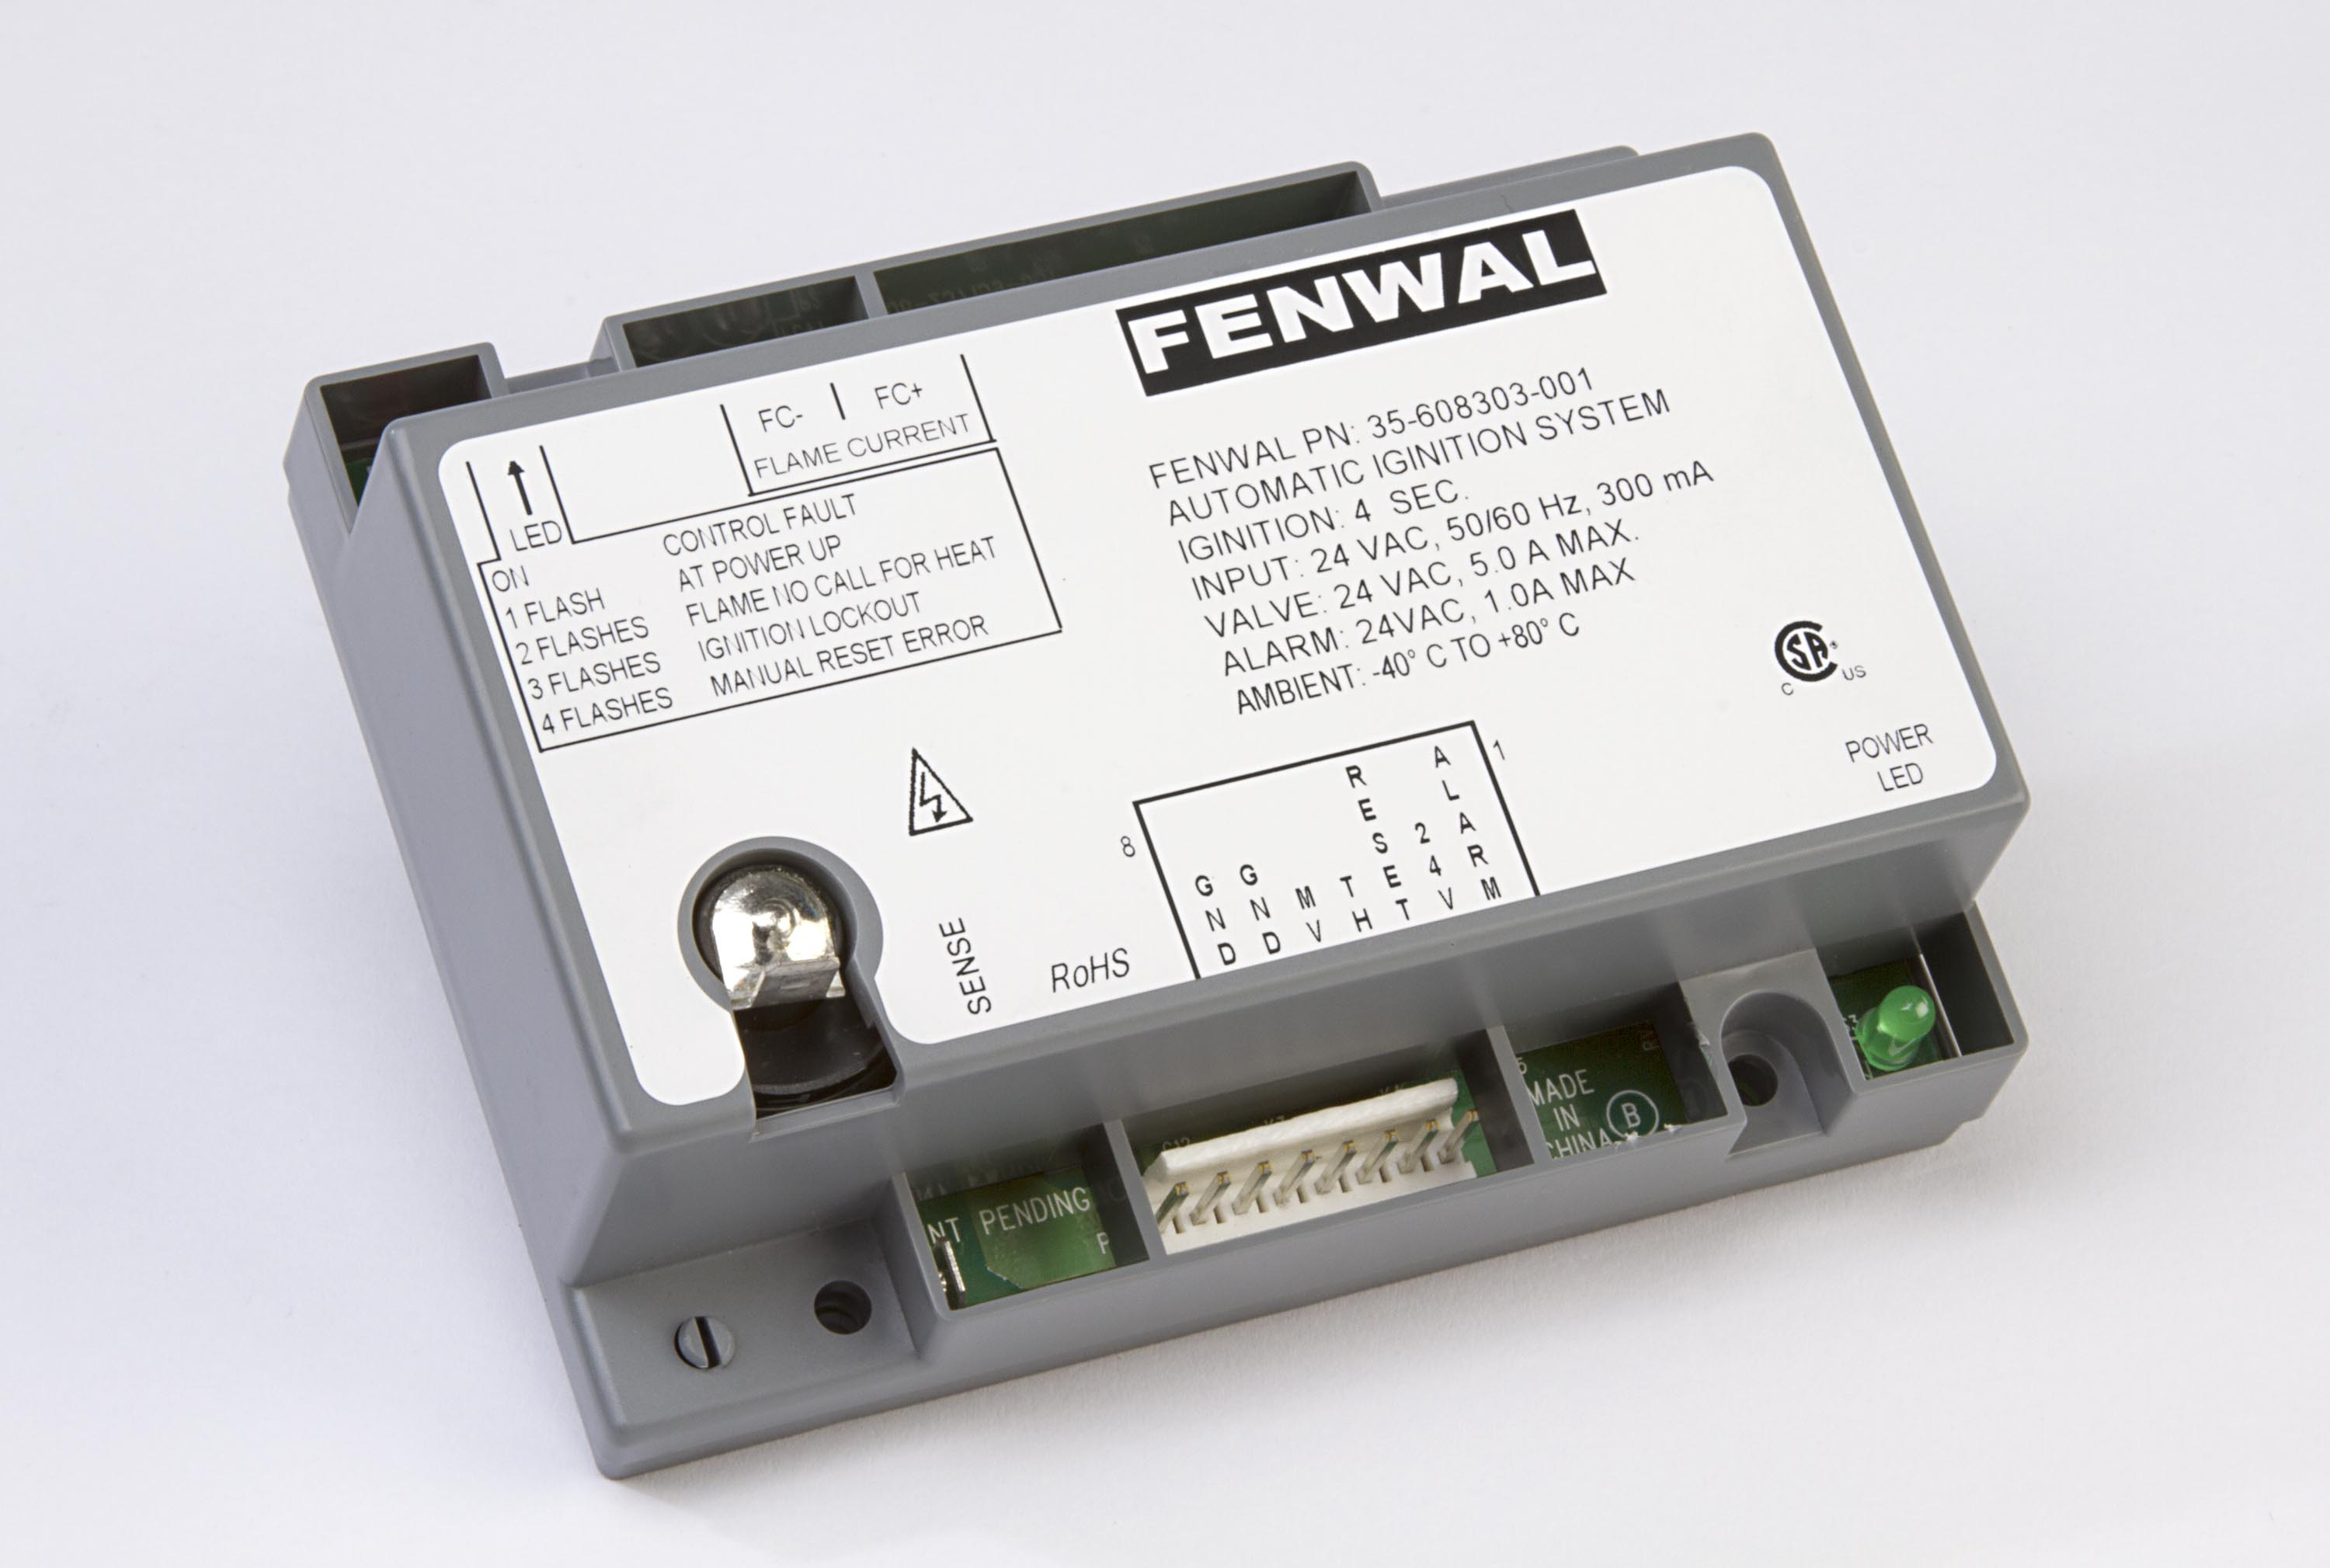 nv_3607] fenwal ignition module wiring diagram hvac schematic wiring  nnigh verr tool mohammedshrine librar wiring 101